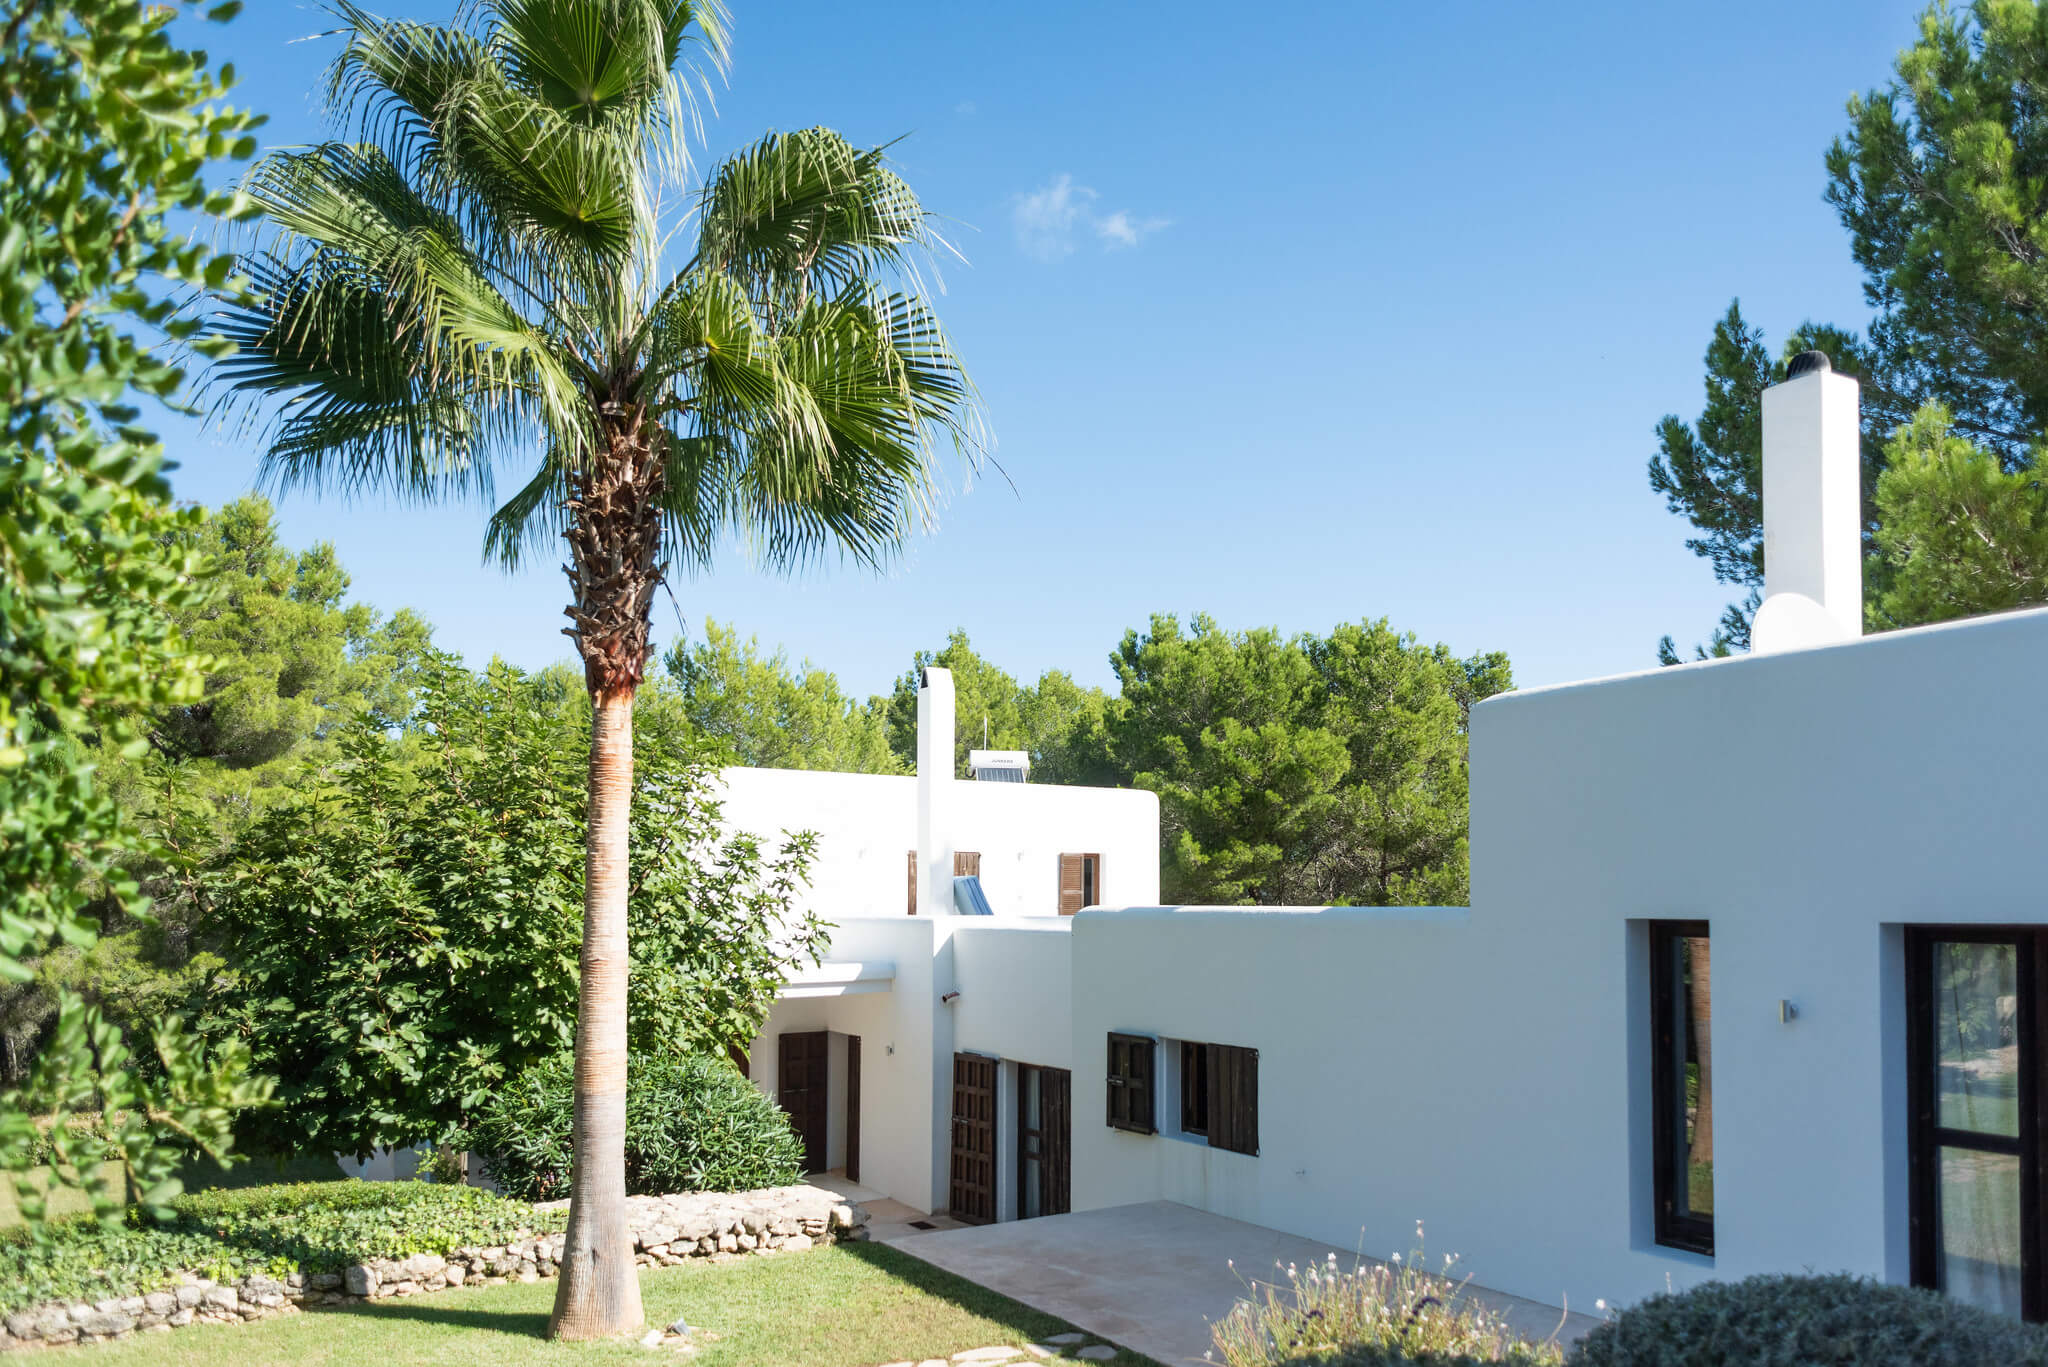 https://www.white-ibiza.com/wp-content/uploads/2020/06/white-ibiza-villas-casa-arabella-exterior-side.jpg